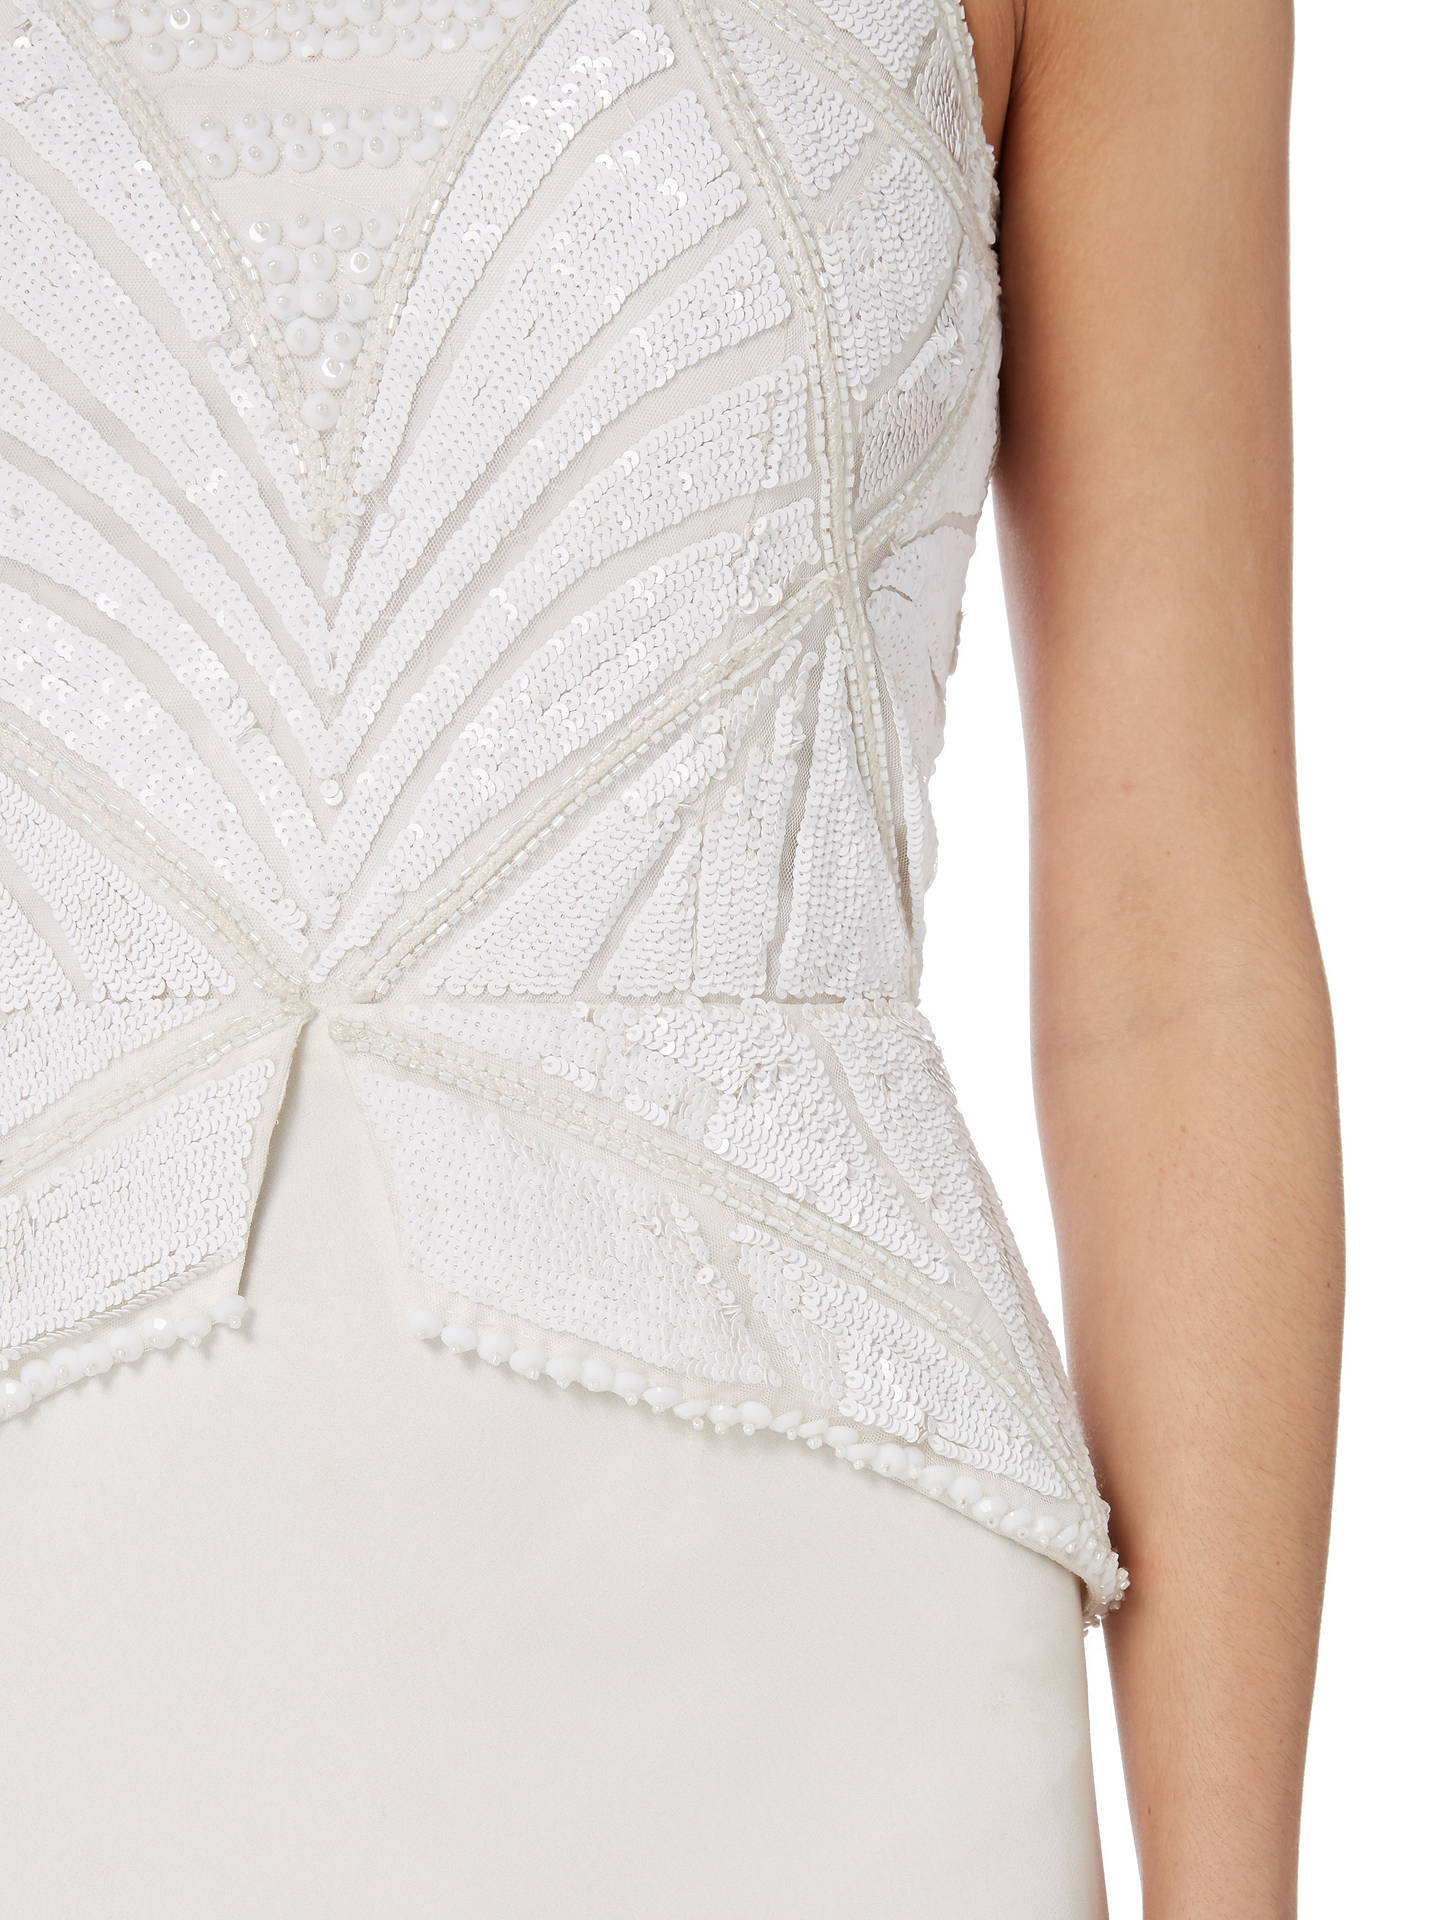 94ff4965d373 ... Buy Raishma Peplum Gown, White, 8 Online at johnlewis.com ...